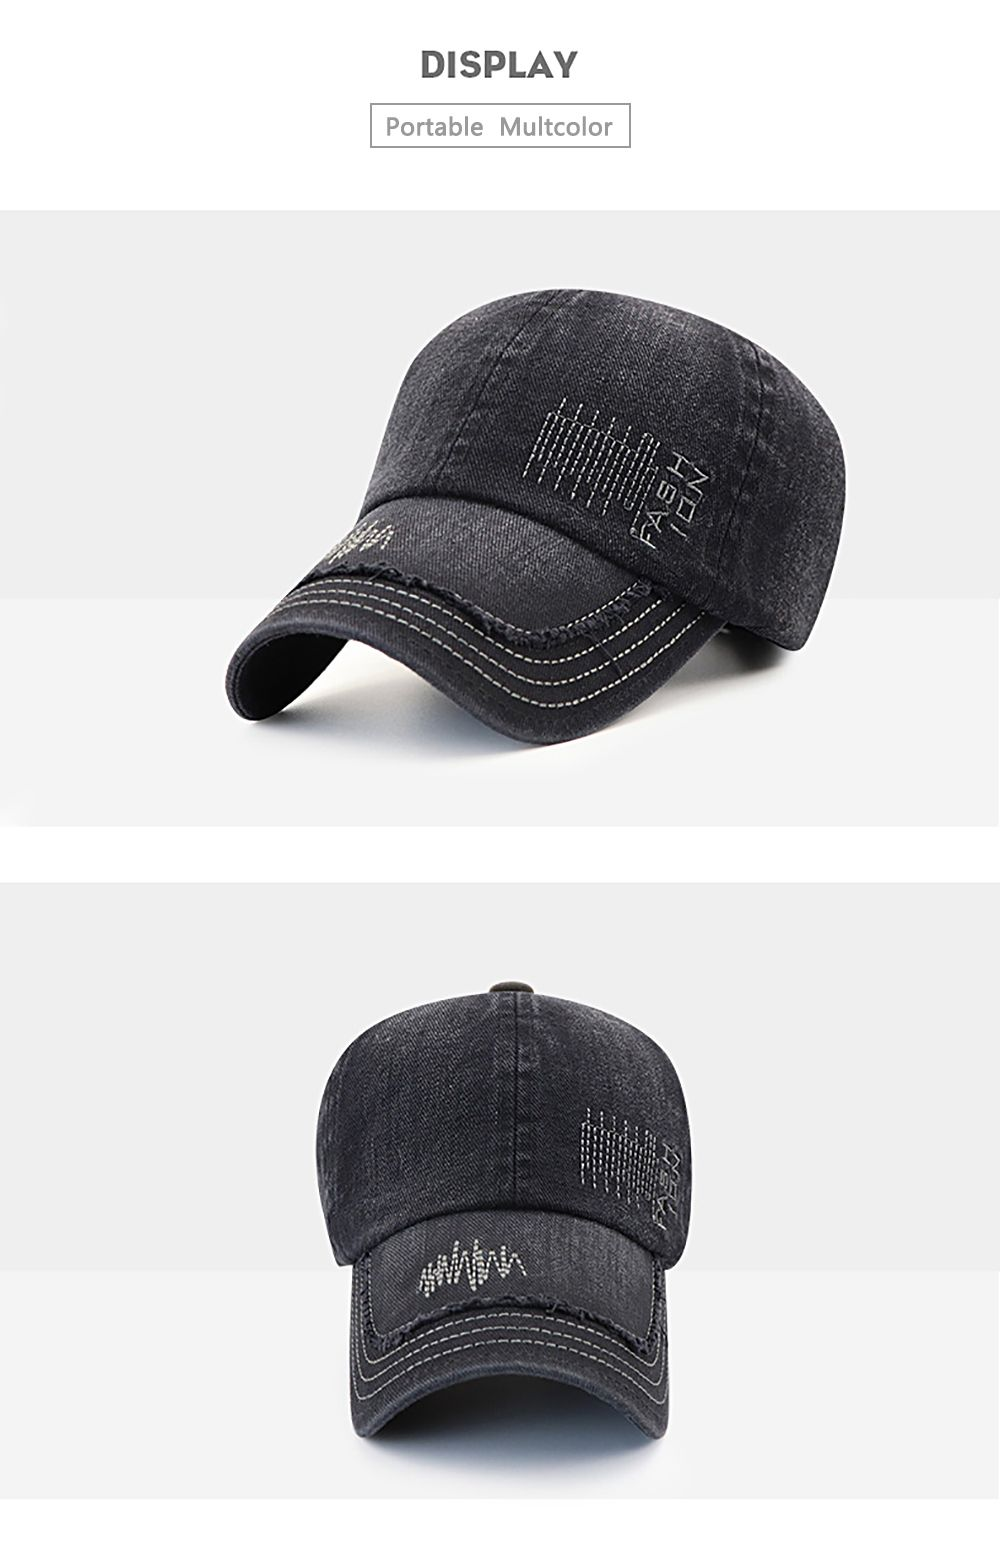 Cowboy Washed Embroidered Letters Sunscreen Cotton Outdoor Baseball Cap a917f77c2